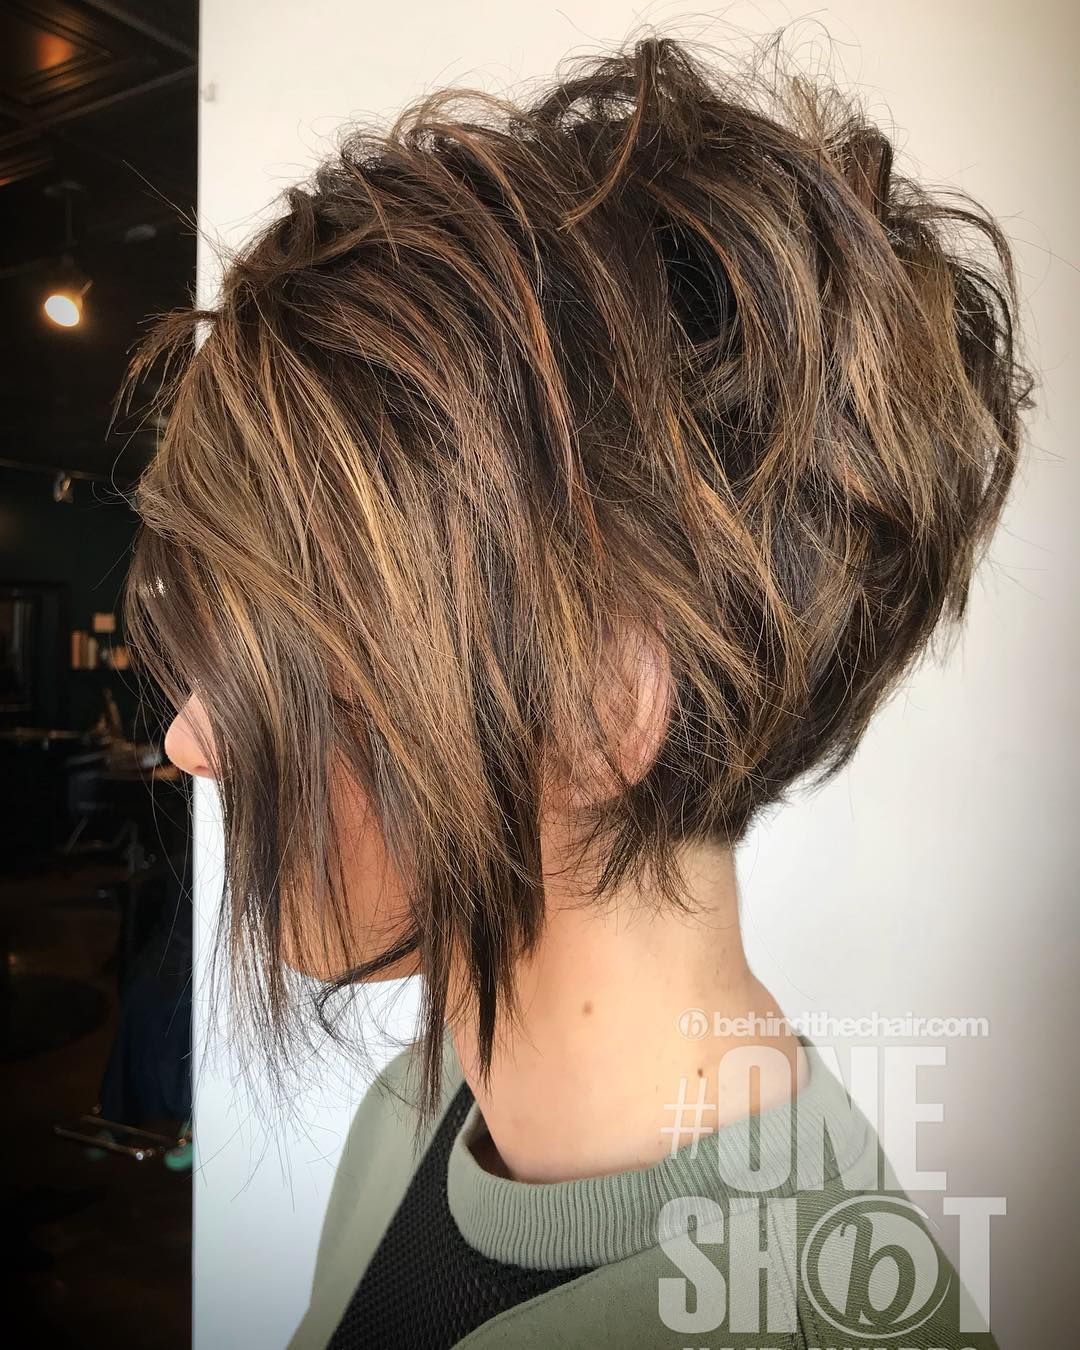 Messy Bob Hairstyles And Haircuts Female Hairstyle For Short Hair Hair Styles Short Shag Hairstyles Thick Hair Styles